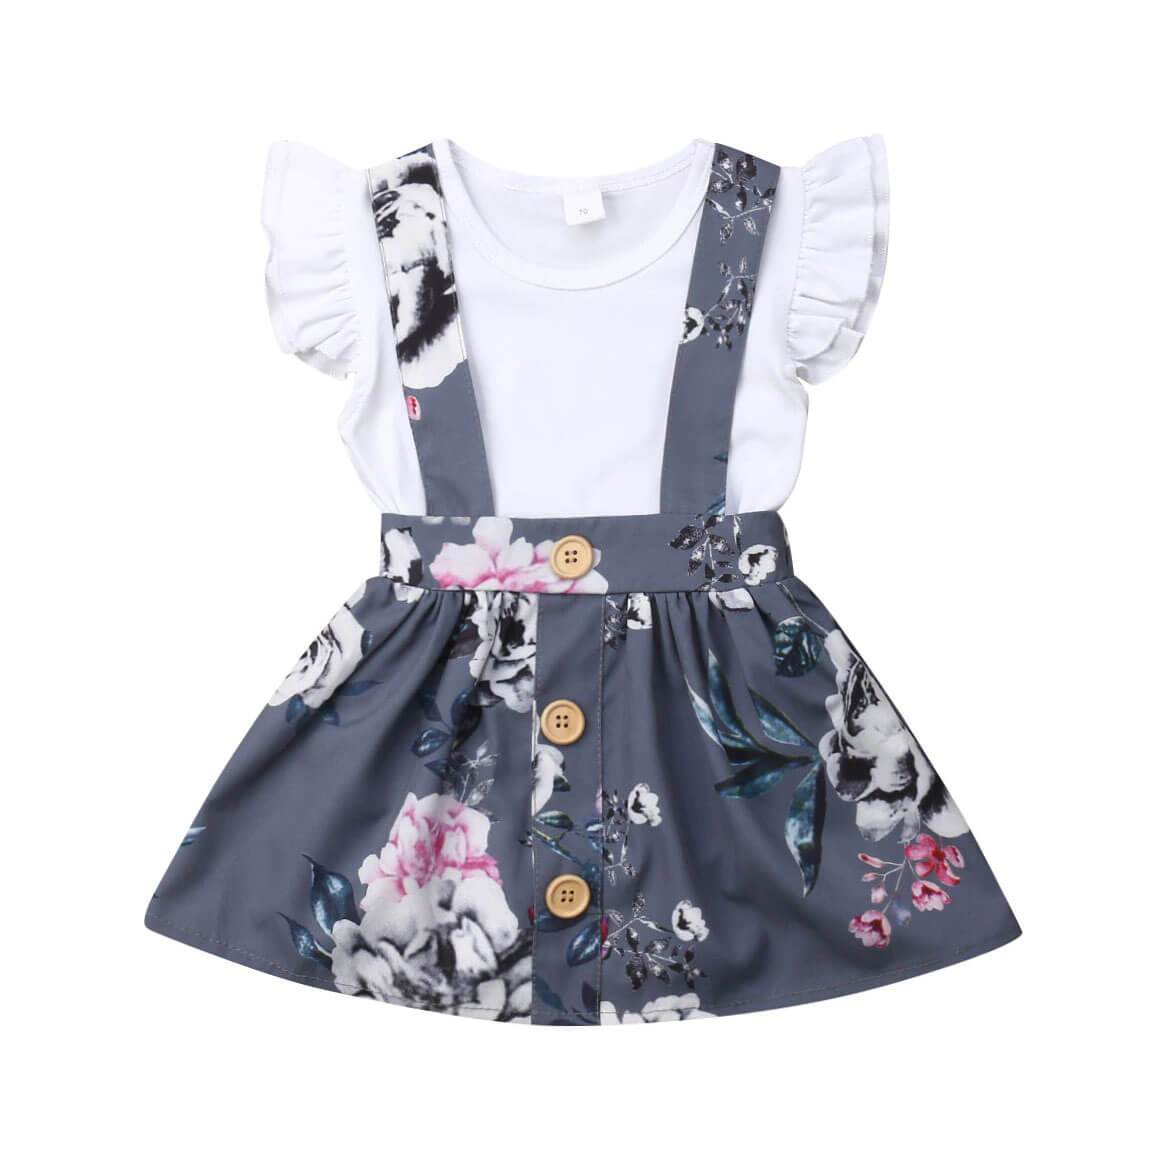 Floral Suspender Skirt Set - The Trendy Toddlers